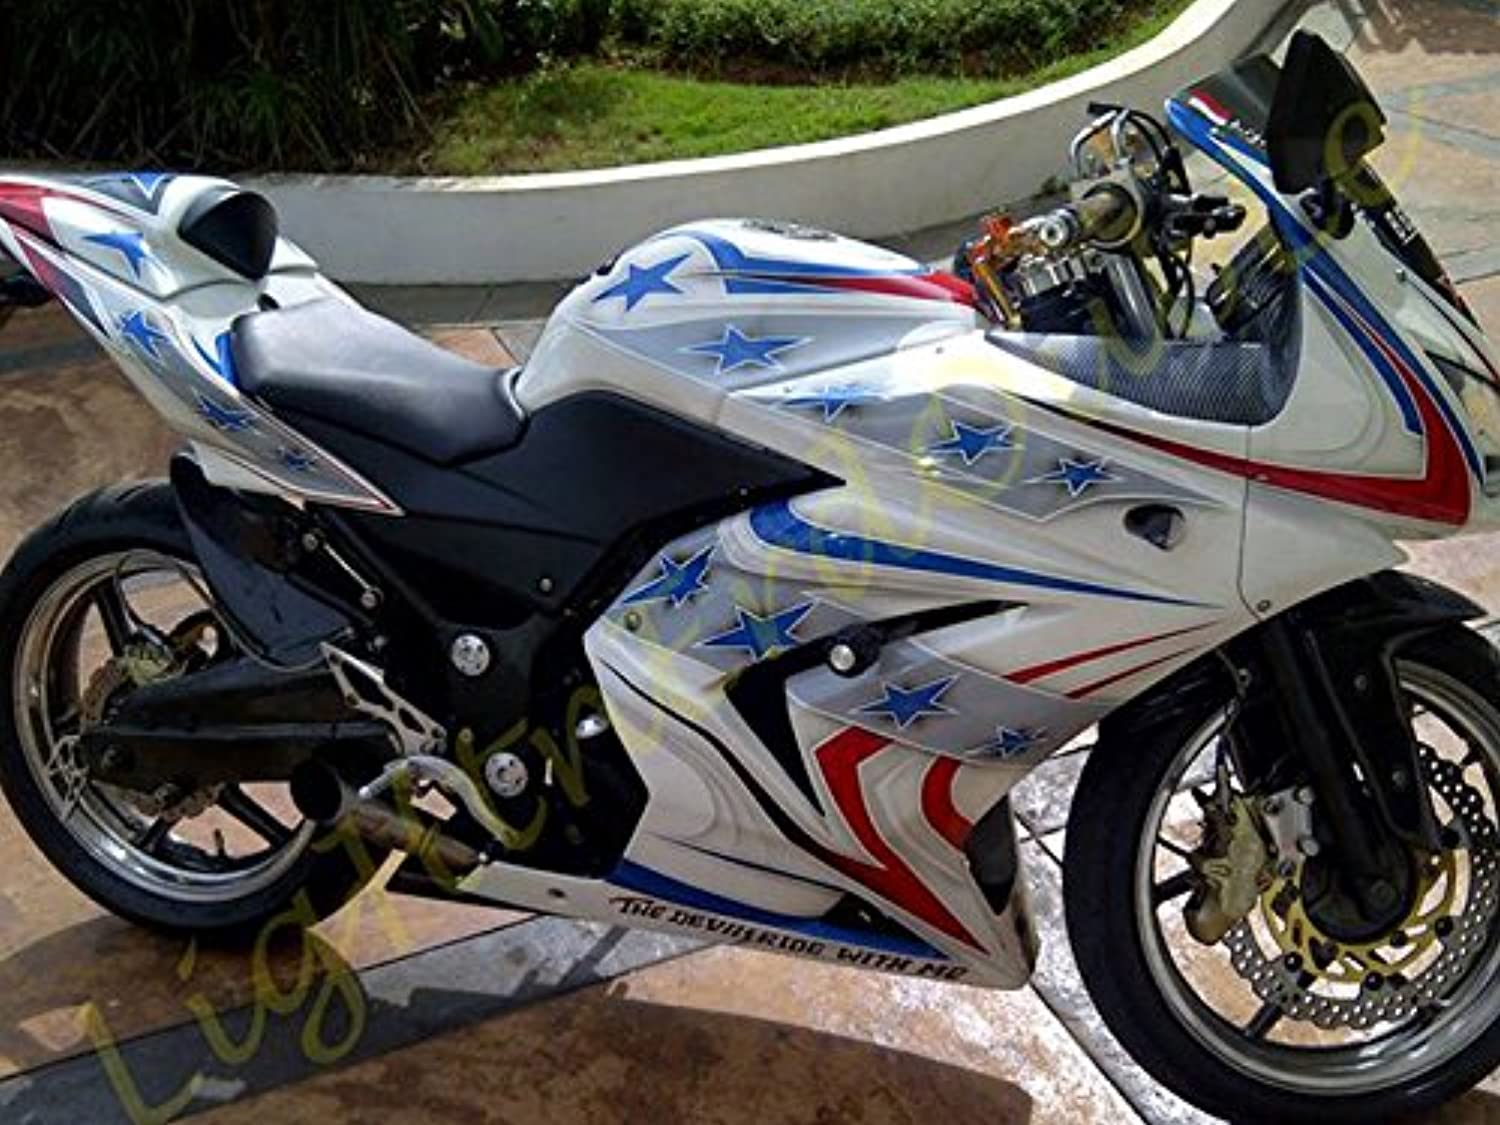 Advanblack ABS Injection Fairing Kits Plastic for Kawasaki EX250R Ninja 250 EX250R ZX250 2008 2009 2010 2011 2012